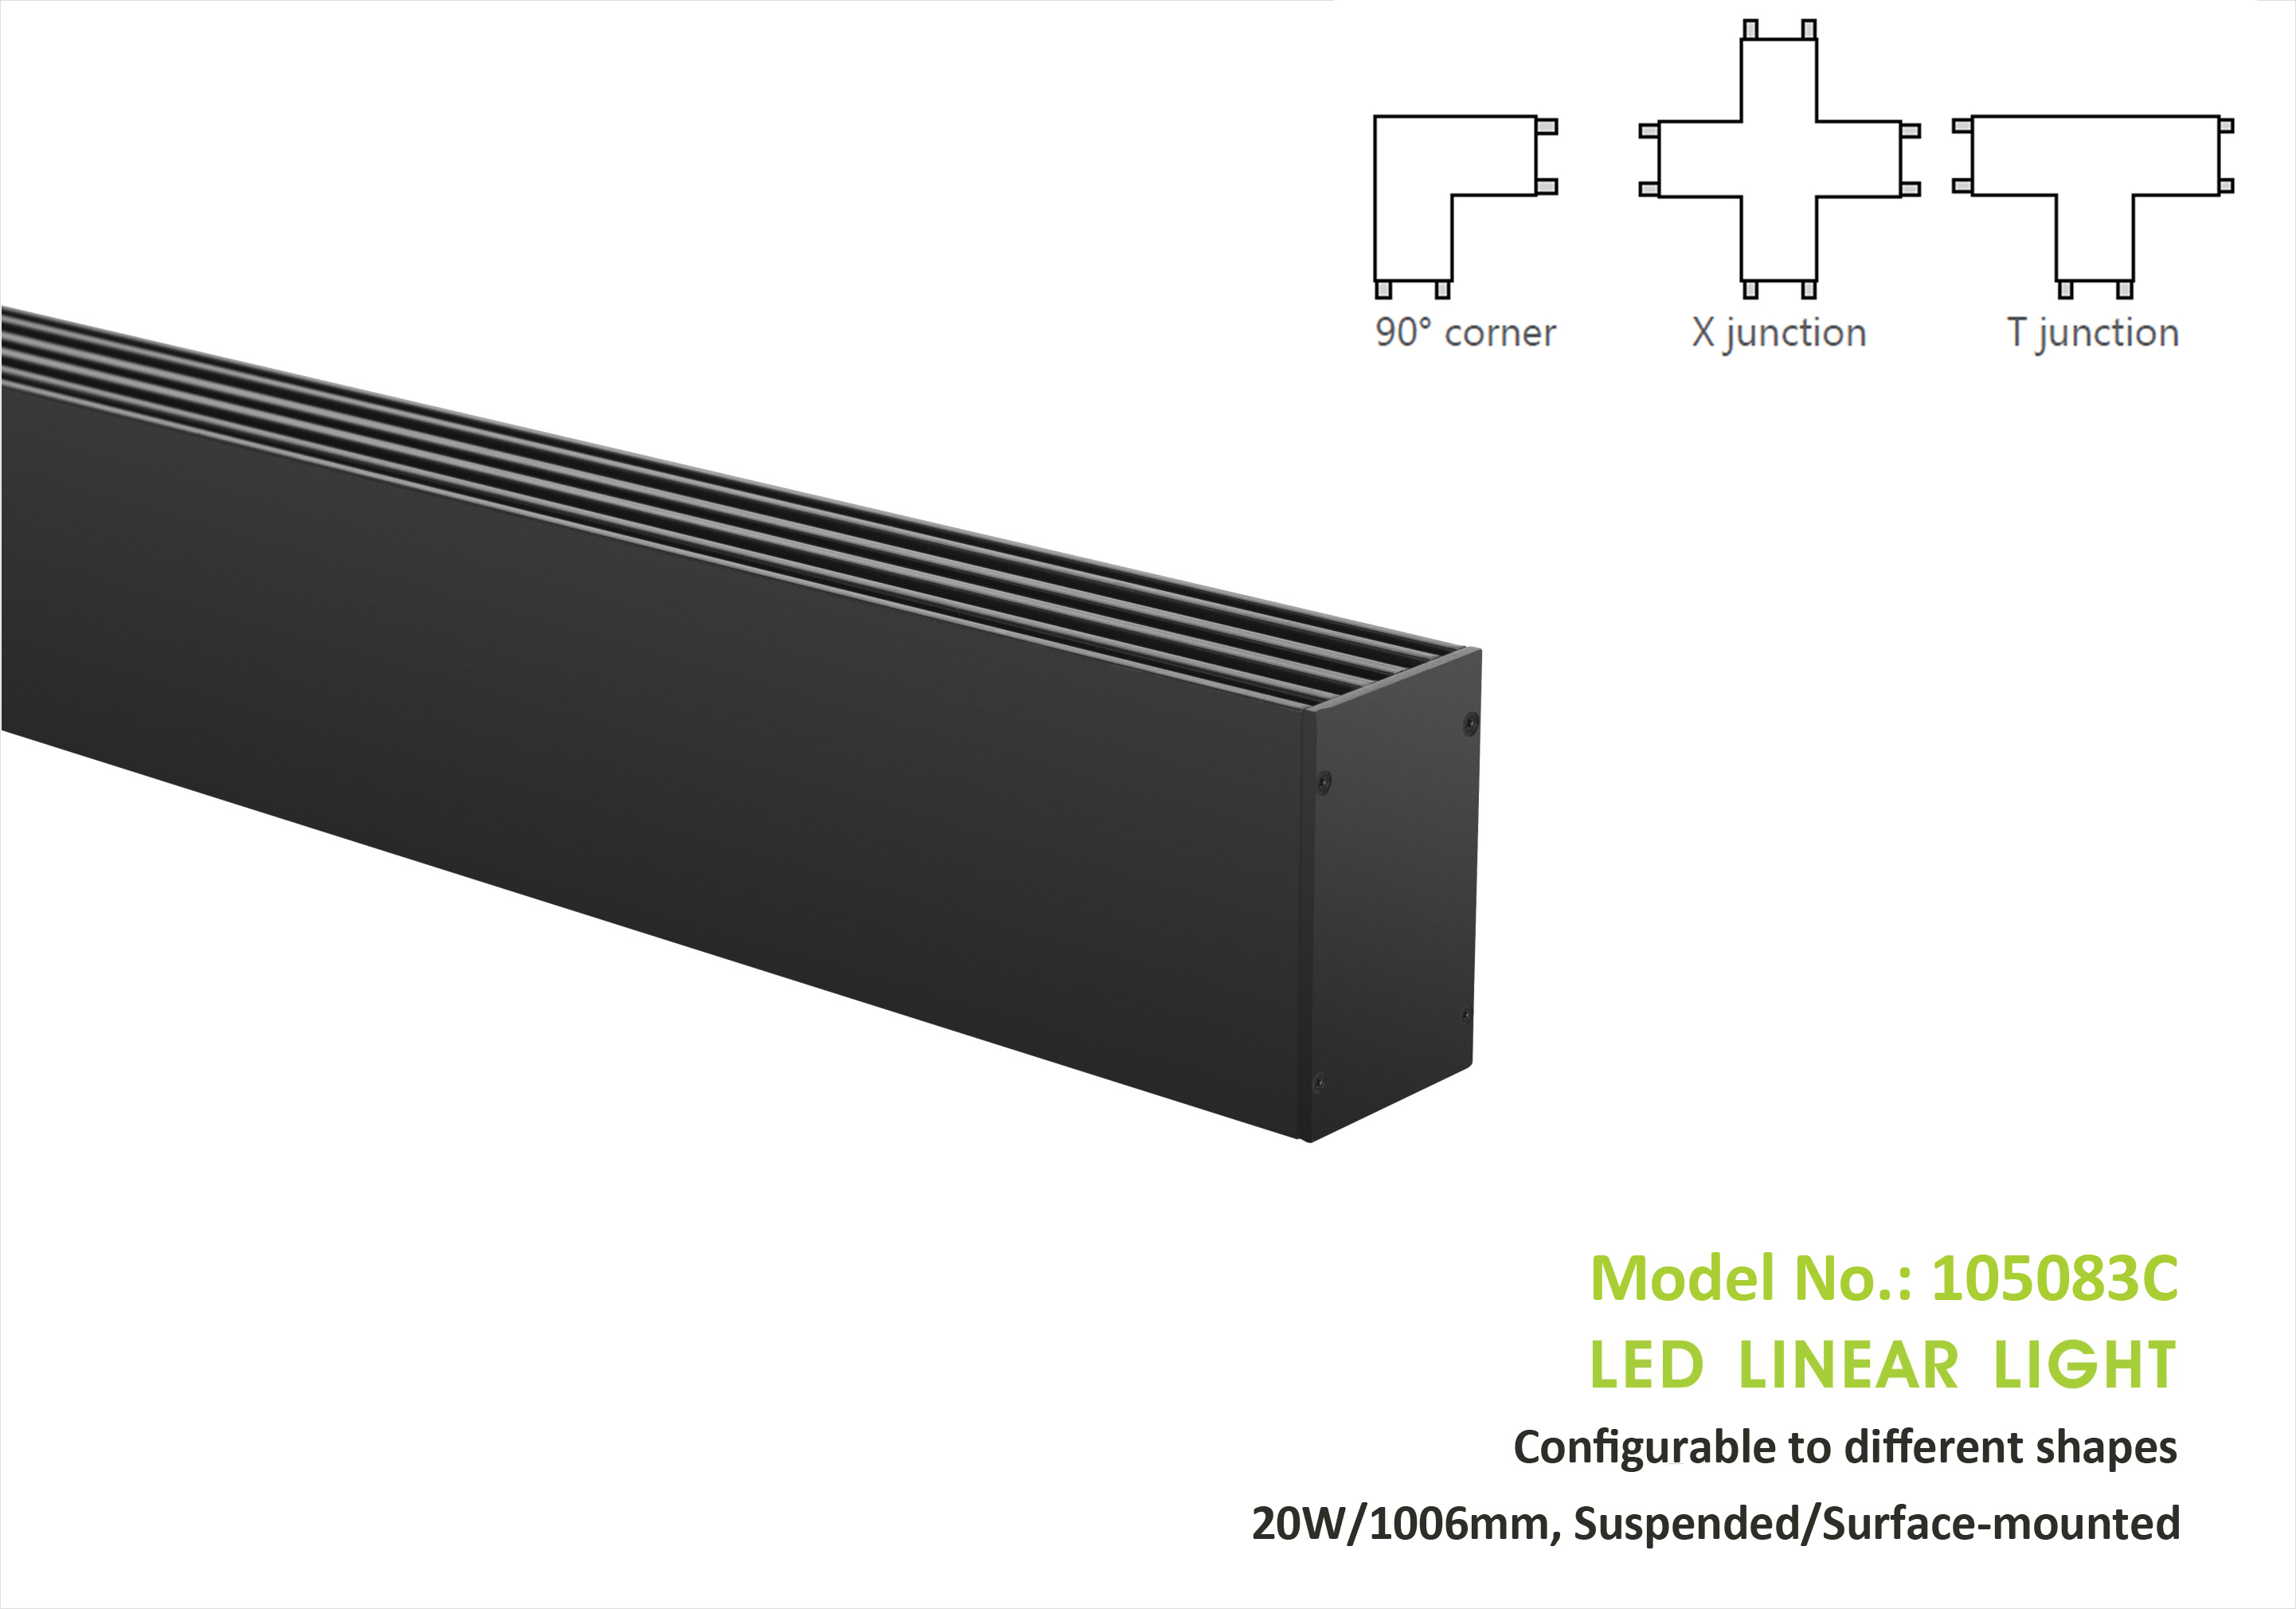 Connectable Linear Light 105083, 20W/1006mm